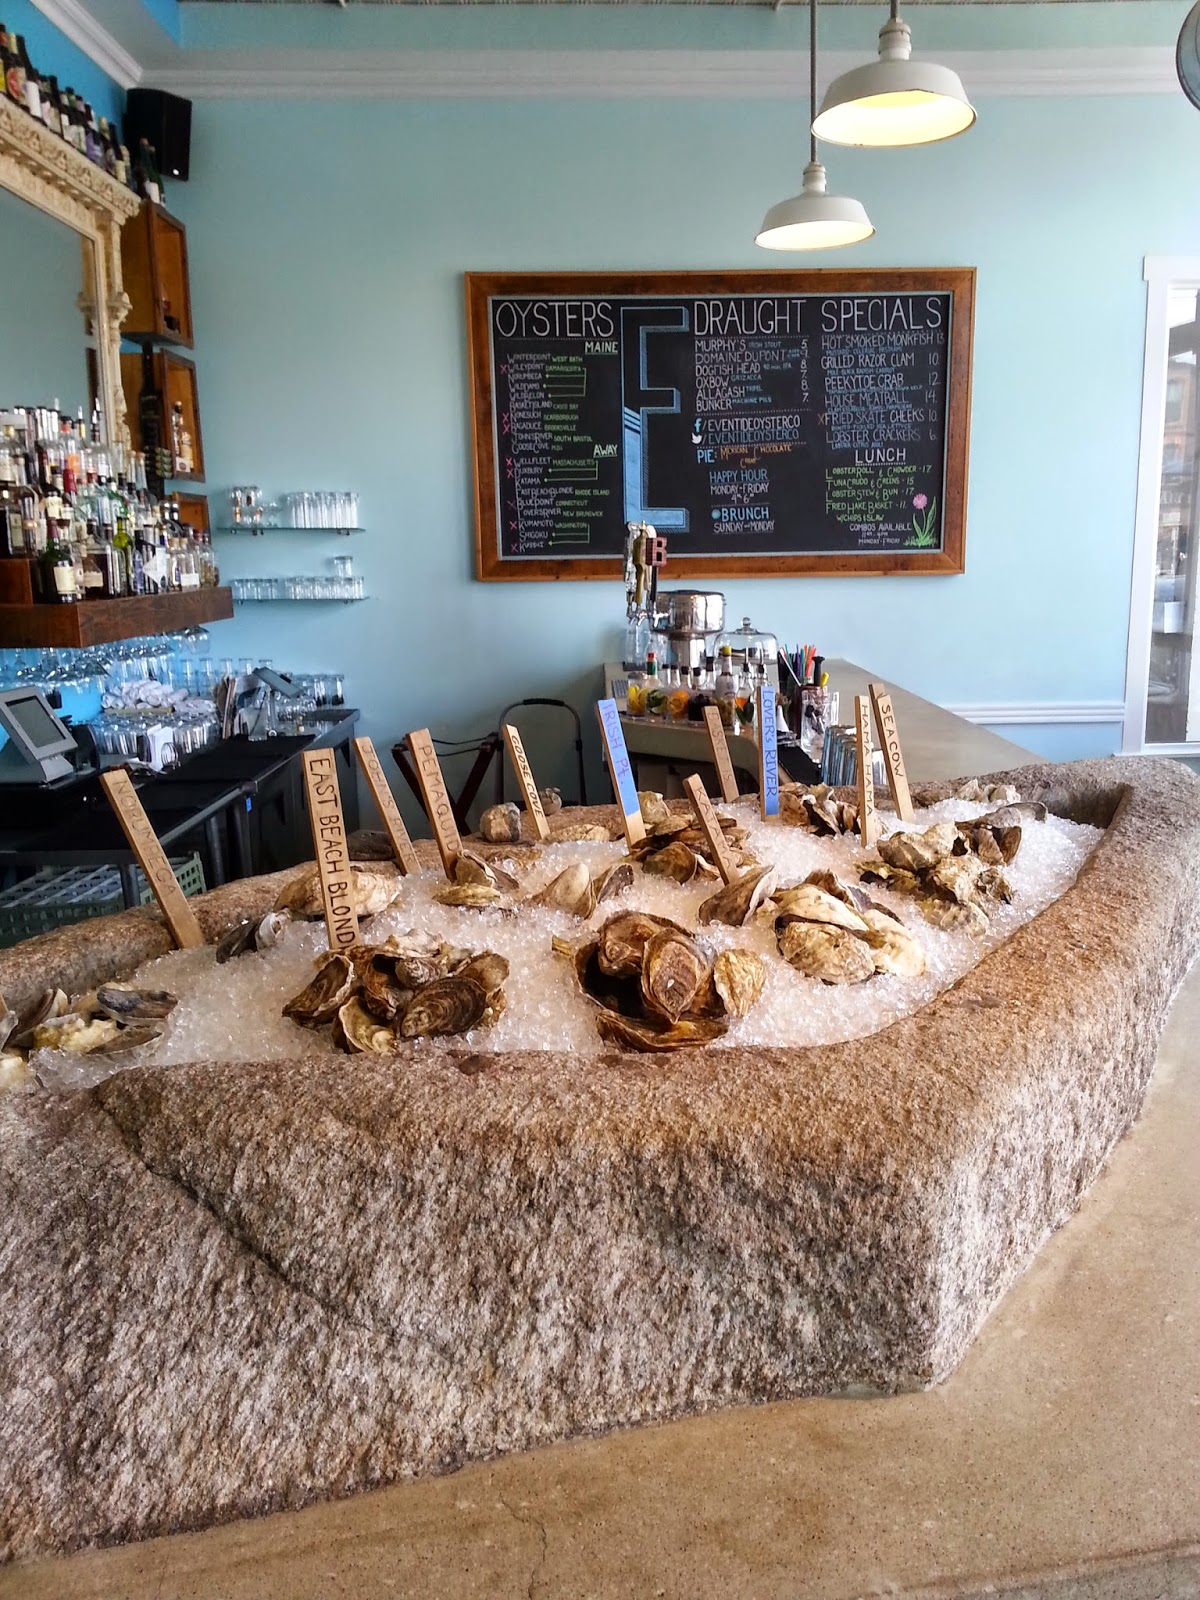 Ten Different Kinds Of Oysters On The Raw Bar